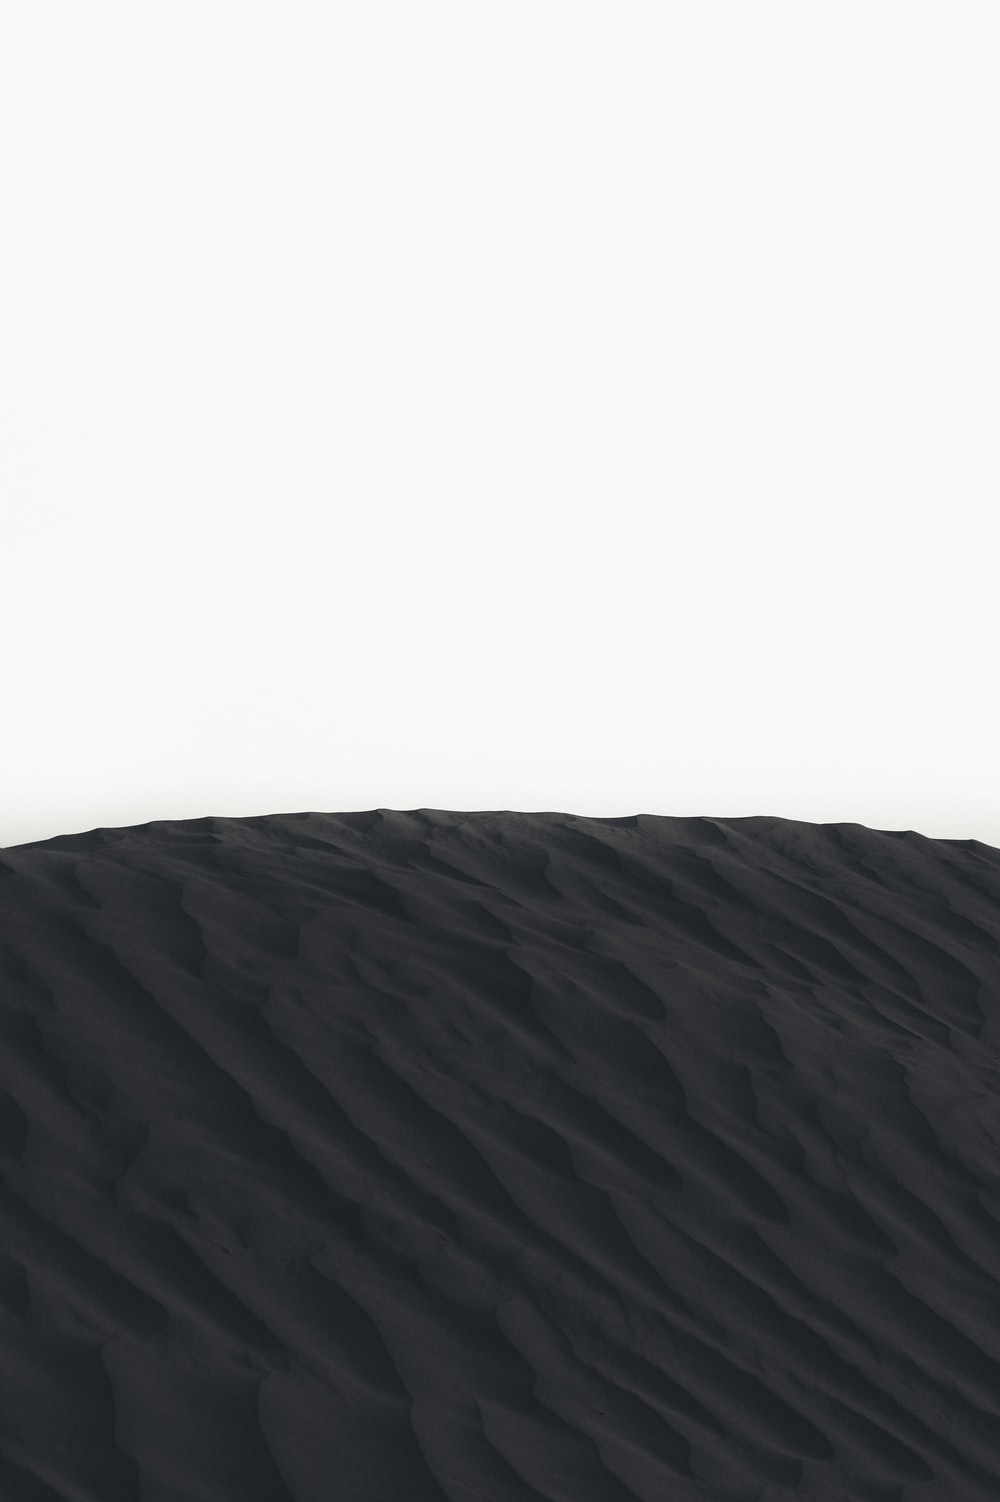 landscape photography of sand dunes